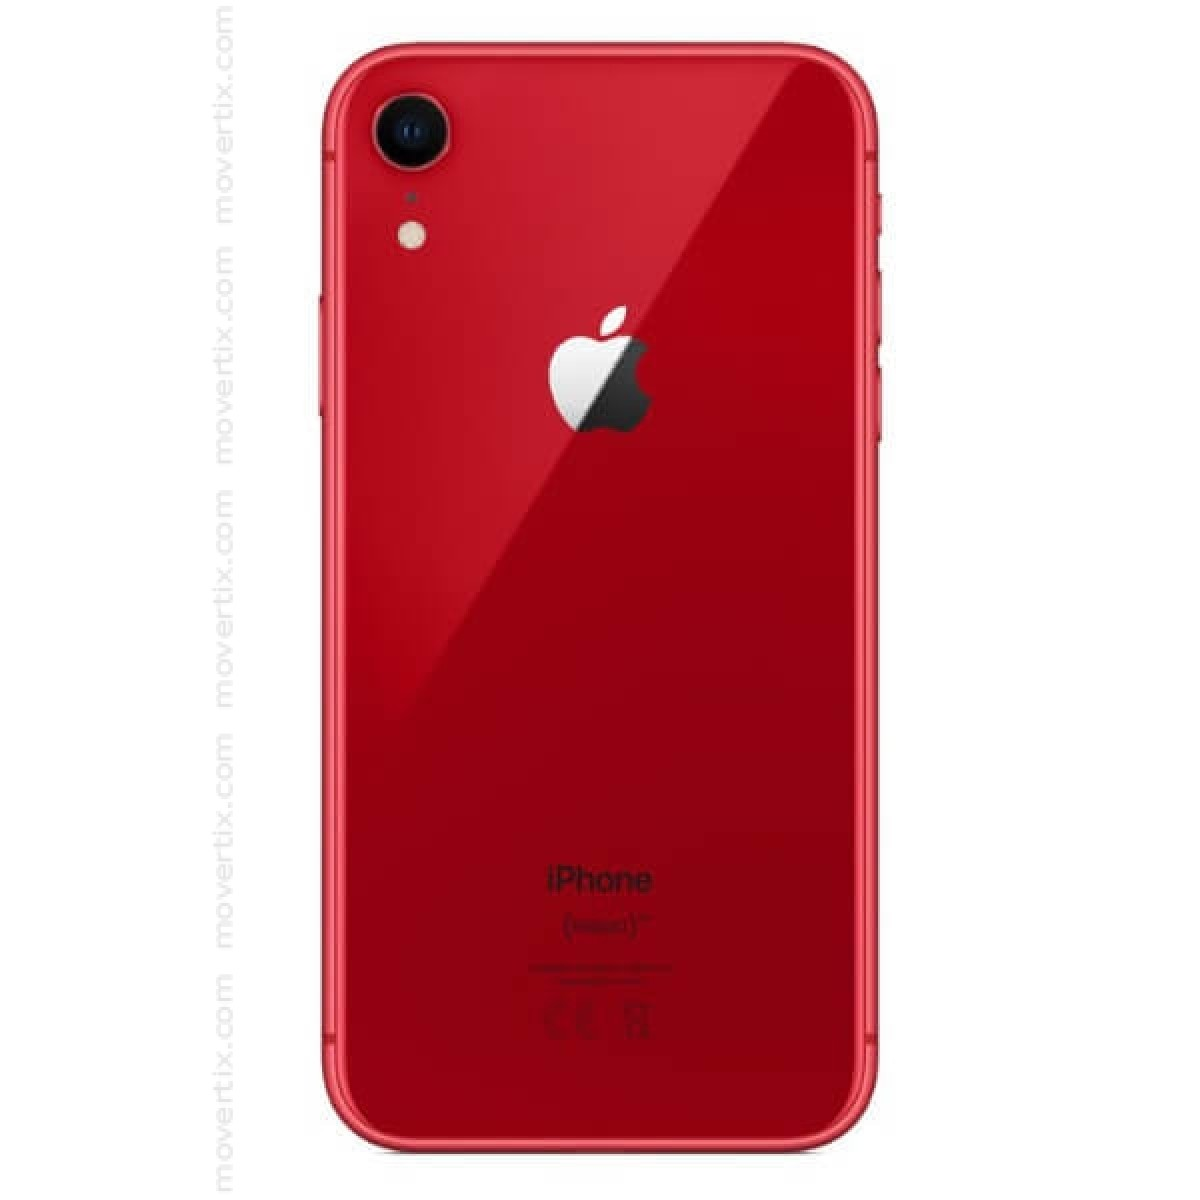 iPhone XR Red 128GB - MRYE2QL/A (0190198773227) | Movertix Mobile Phones  Shop